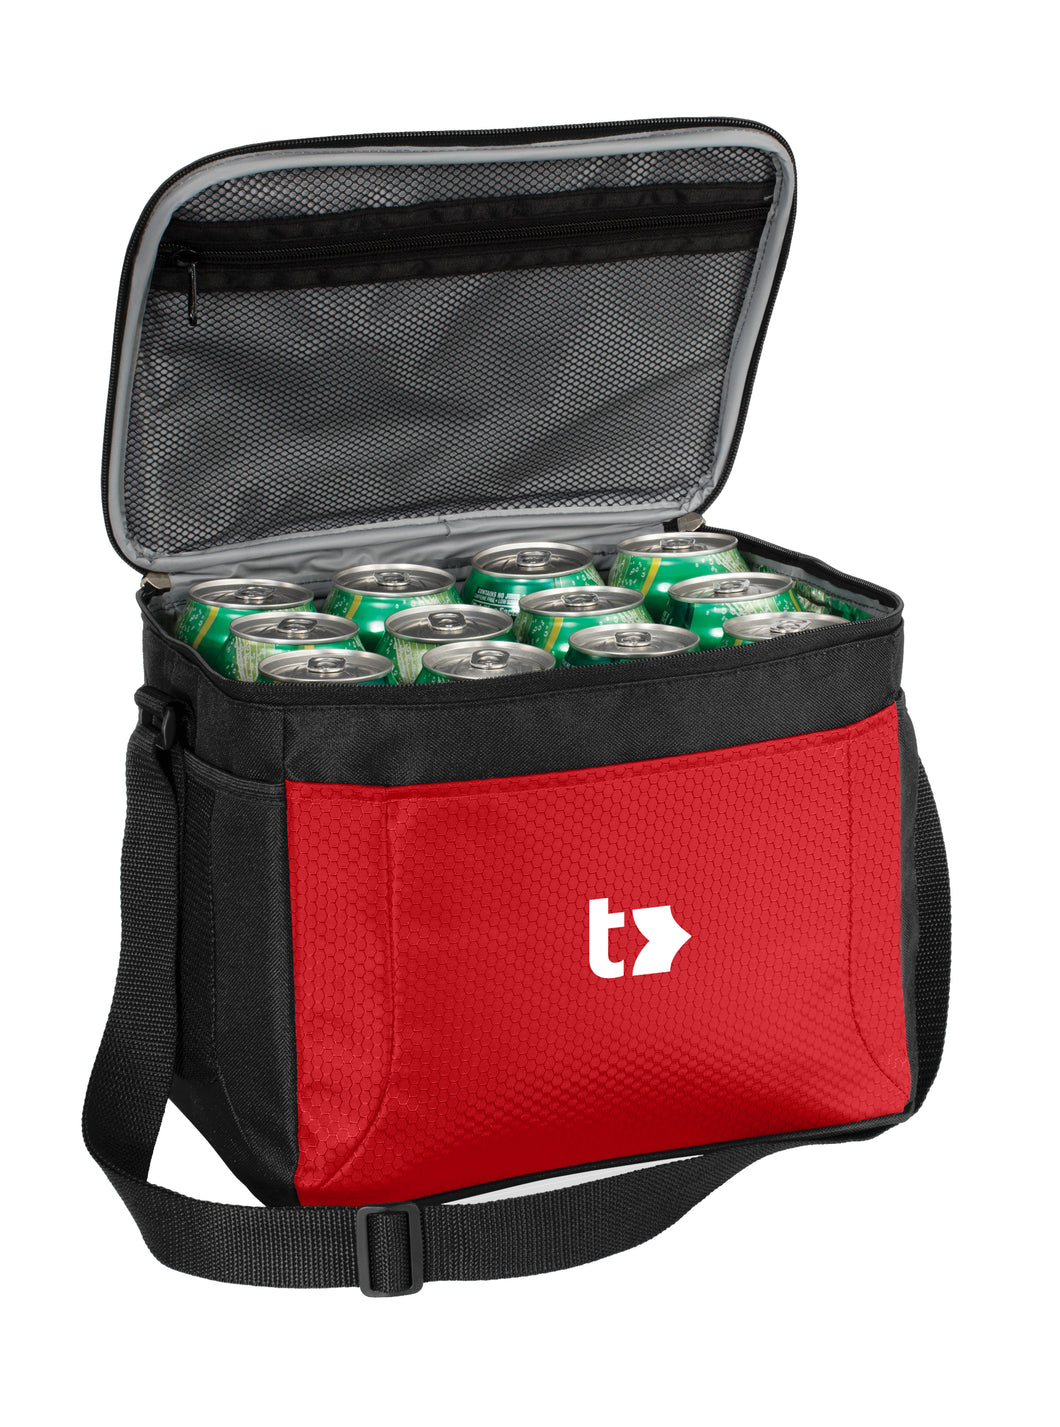 Tactive 12-Can Cube Cooler